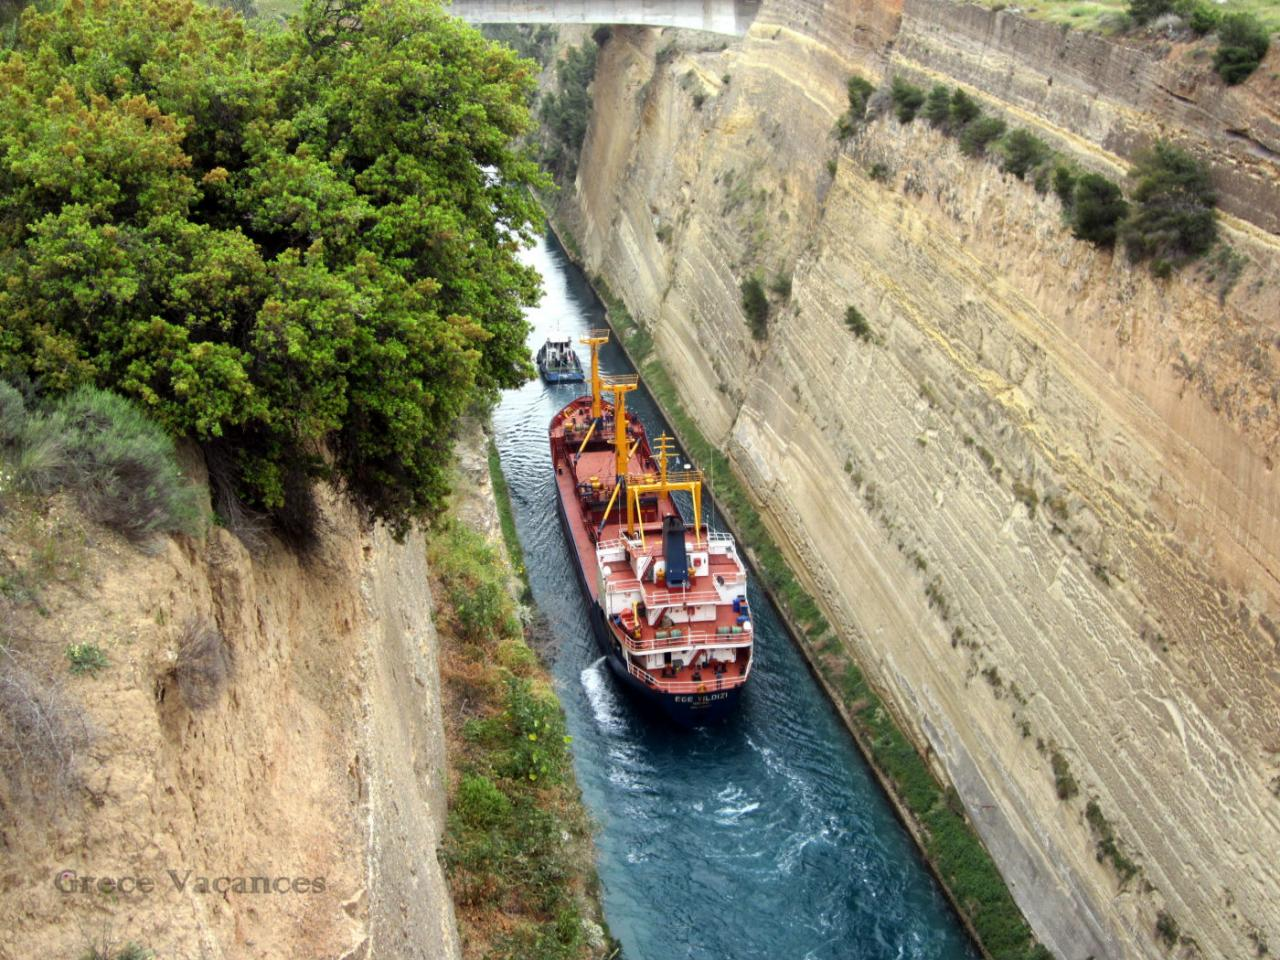 IMG_3220-Corinthe le canal - GV-ip